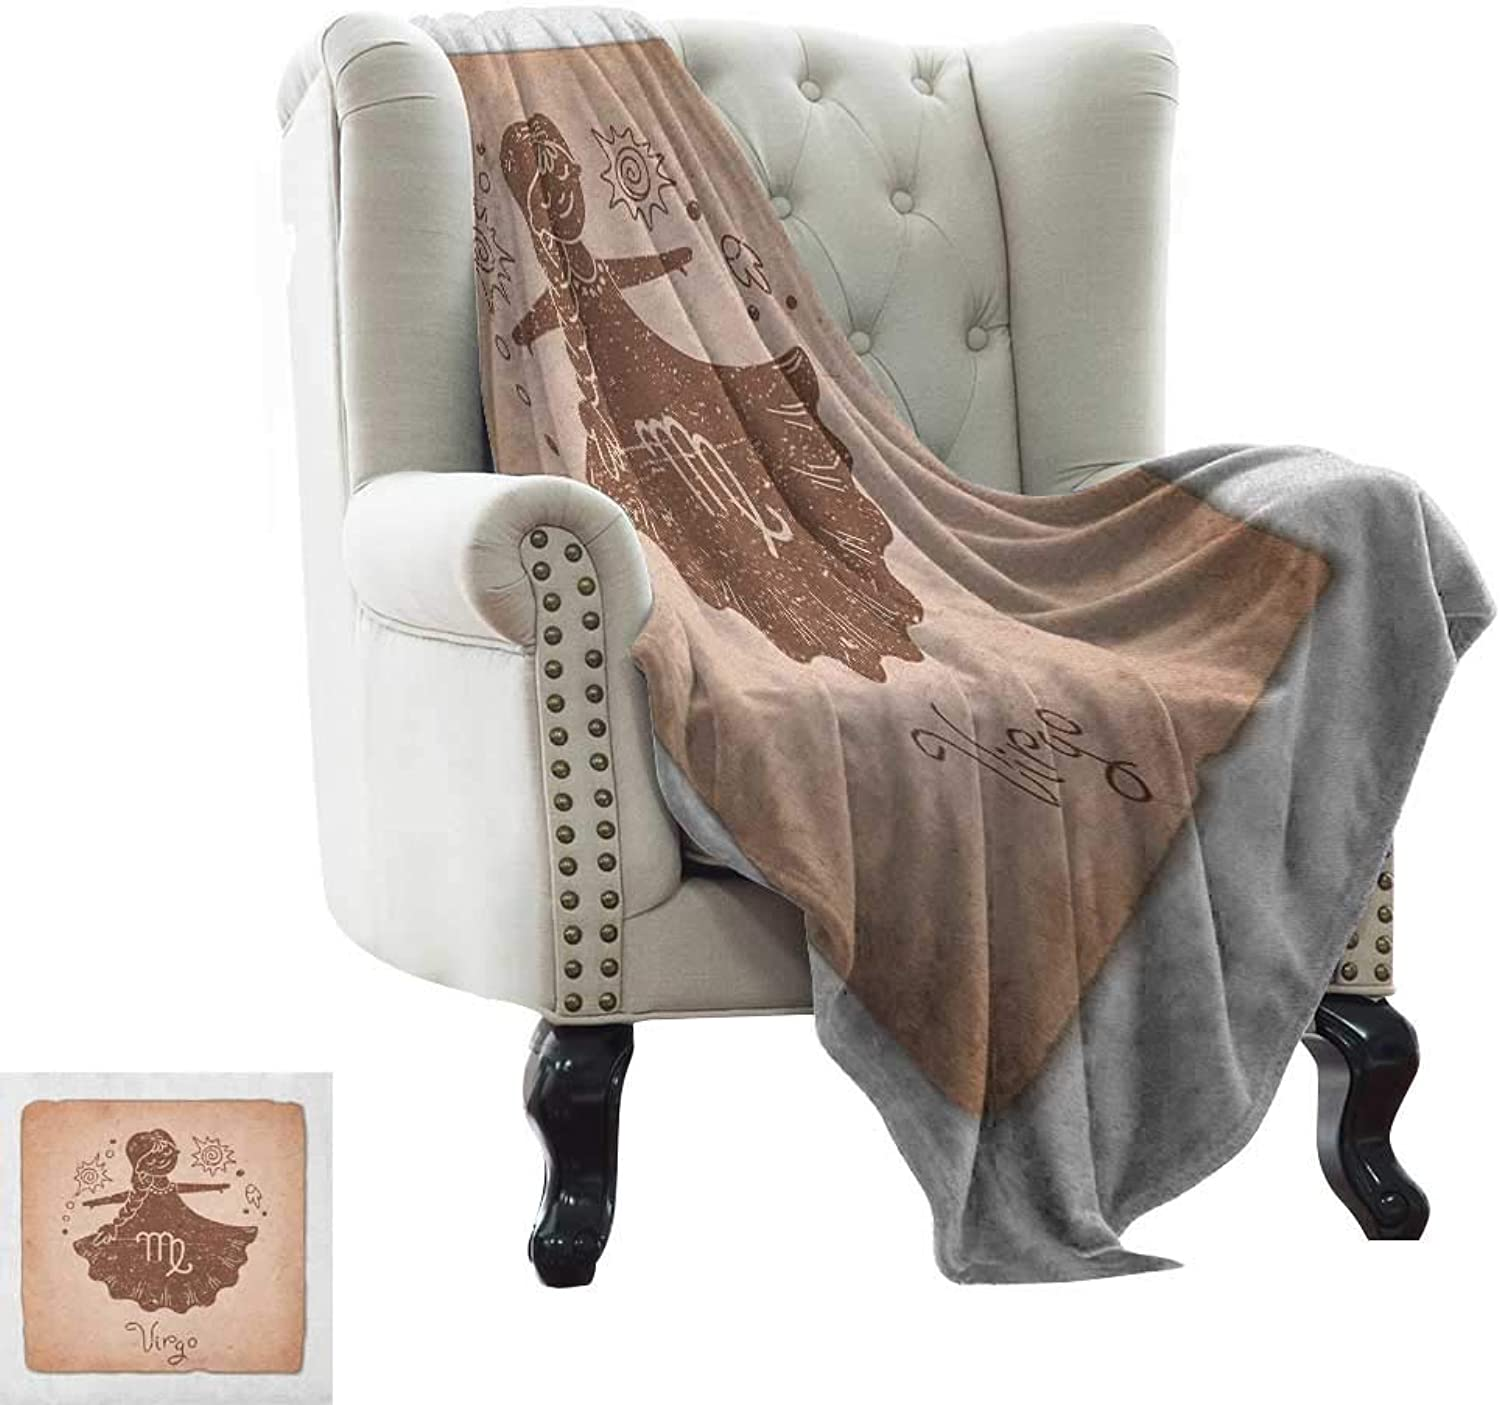 Warmfamily Virgo, Throw Blanket,Vintage Style Display with Little Girl in Dress Floral Sky Elements Astrology Image 60 x36 ,Super Soft and Comfortable,Suitable for Sofas,Chairs,beds